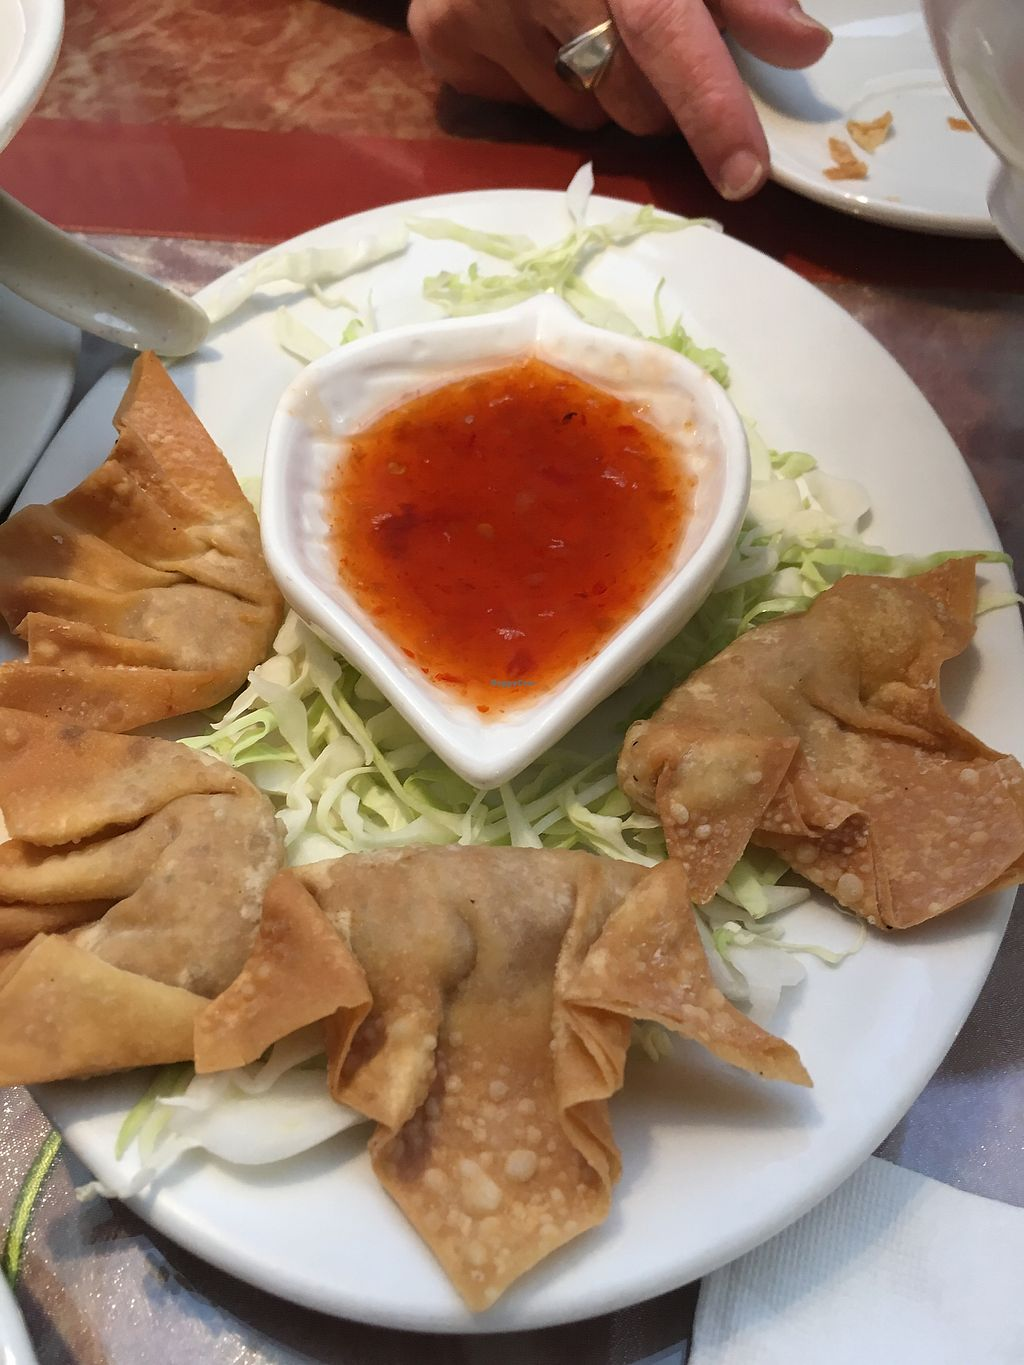 """Photo of Seattle Lotus Vegetarian  by <a href=""""/members/profile/Veg4Jay"""">Veg4Jay</a> <br/>Deep Fried Wonton <br/> August 12, 2017  - <a href='/contact/abuse/image/98282/291791'>Report</a>"""